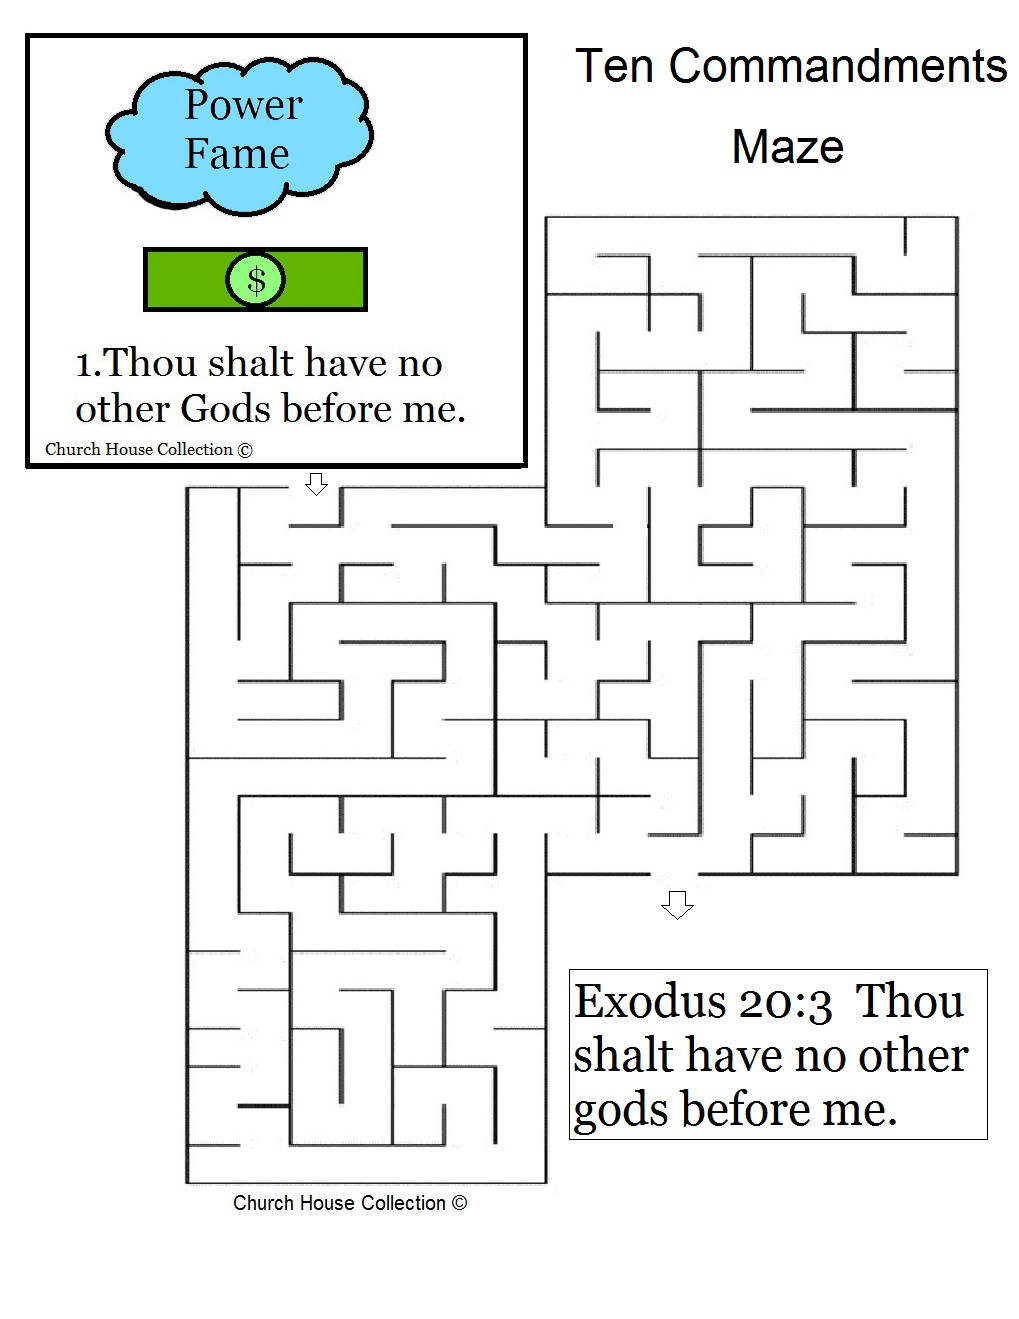 Thou Shalt Have No Other Gods Before Me Maze Images - Frompo